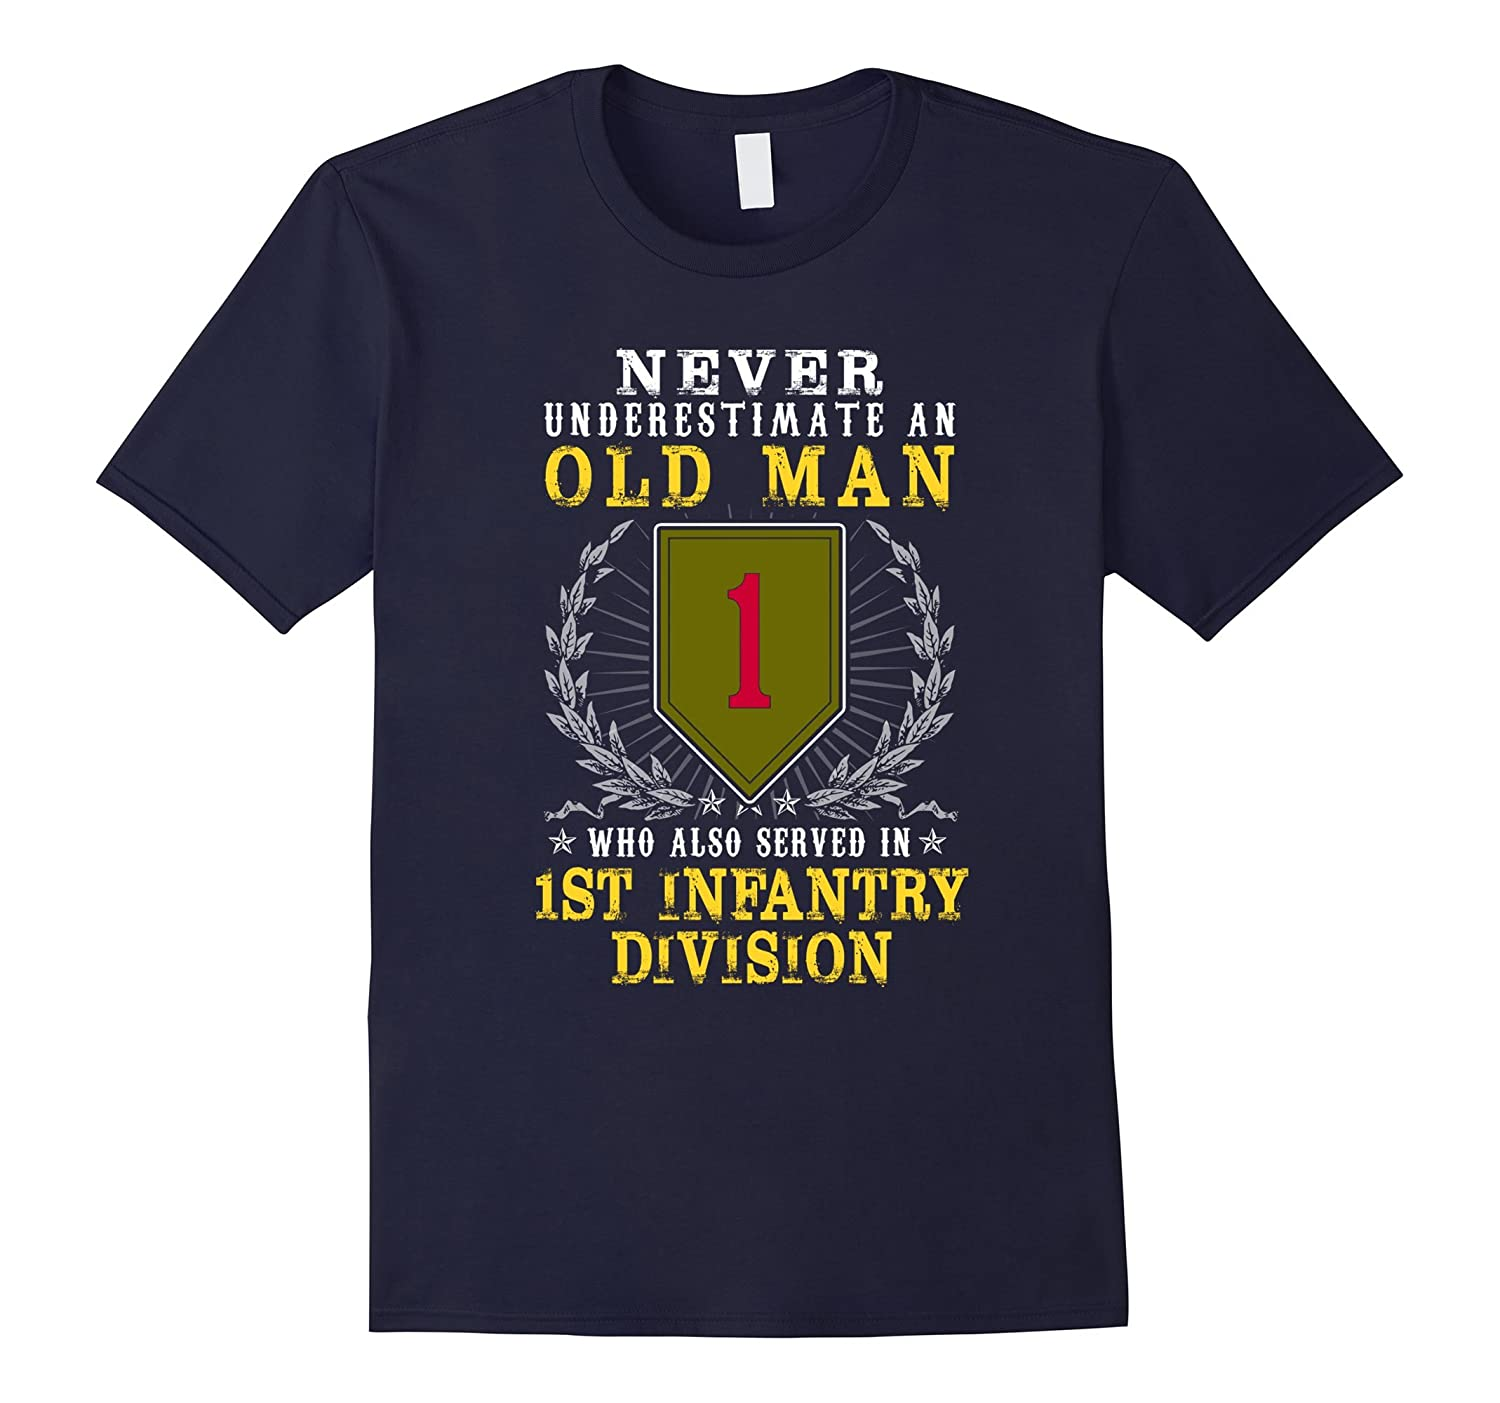 1st infantry division tshirt, never underestimate an old man-Art